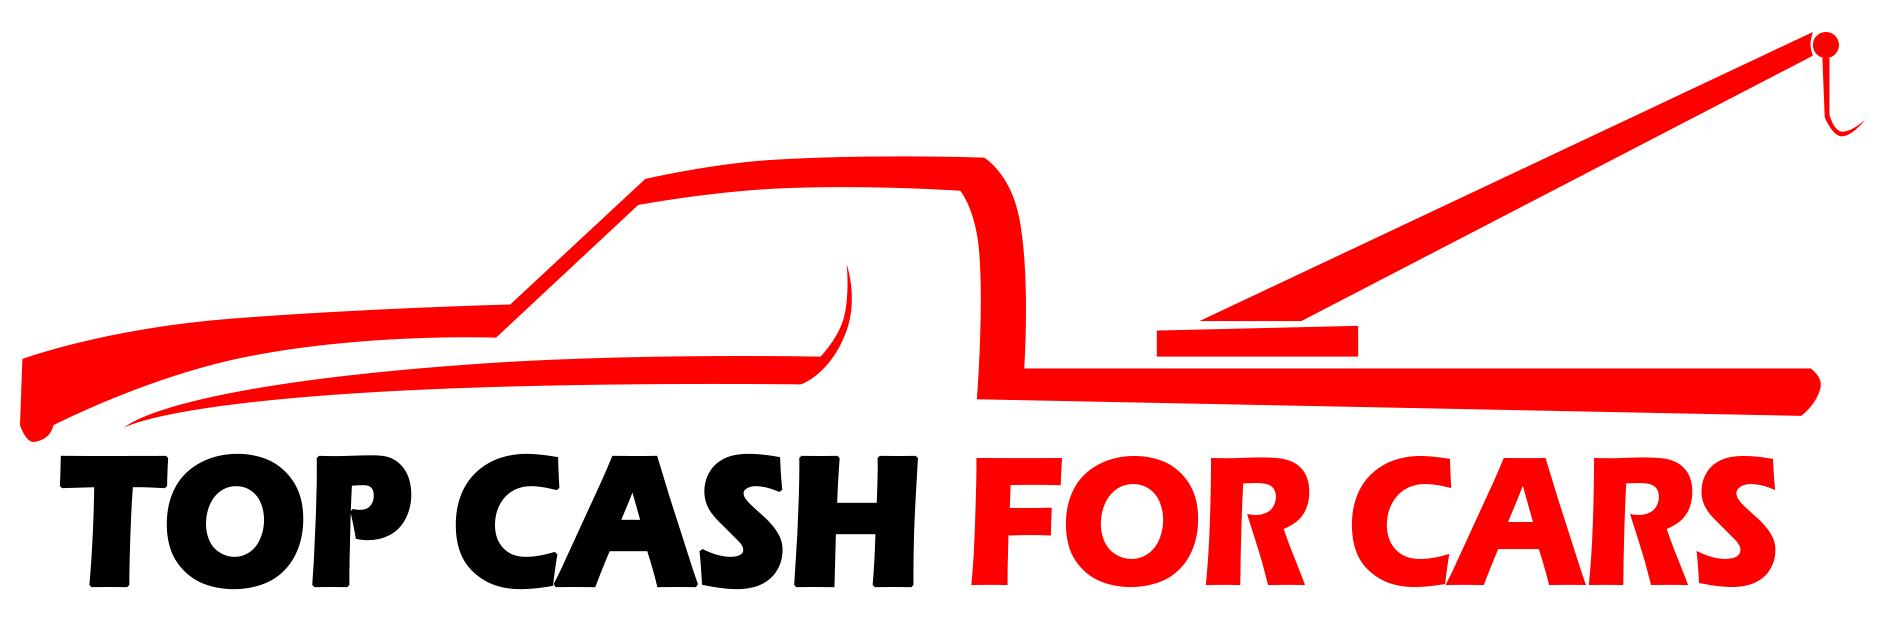 Cash for cars in Auckland, Auckland